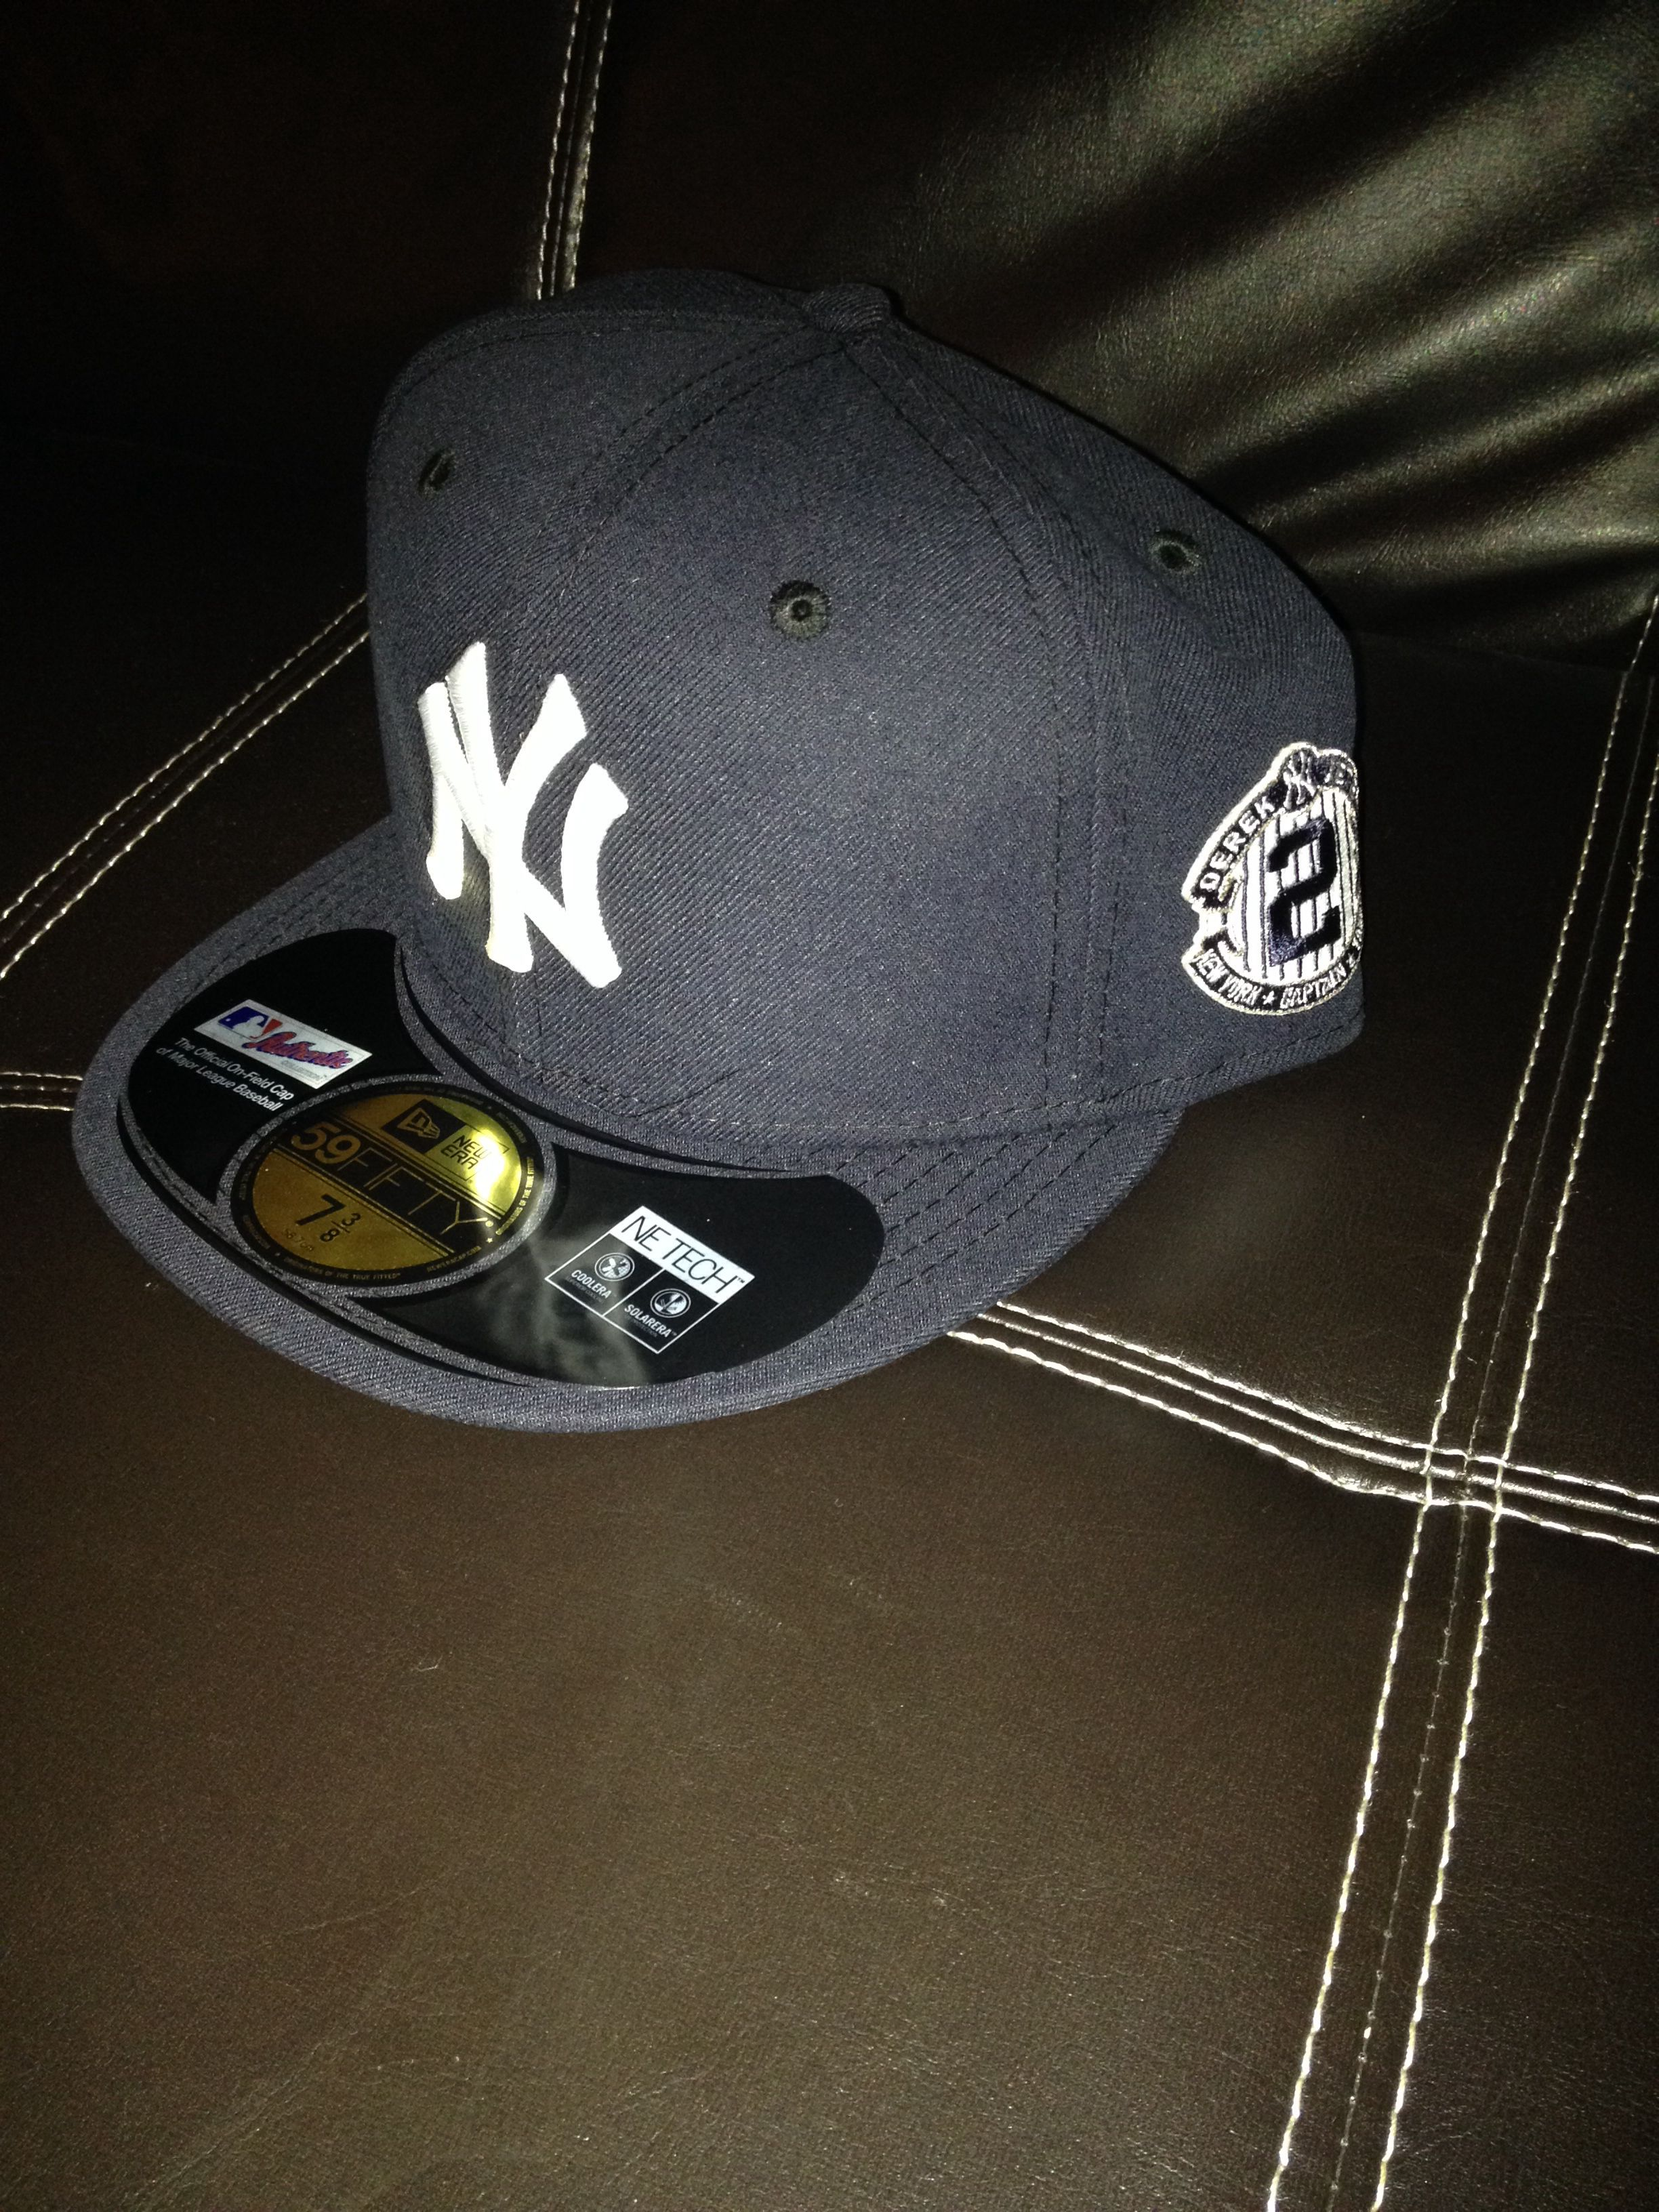 New York Yankees Fitted New Era Cap With Derek Jeter Farewell Emblem Yankee Fitted Nyc Fashion New Era Cap